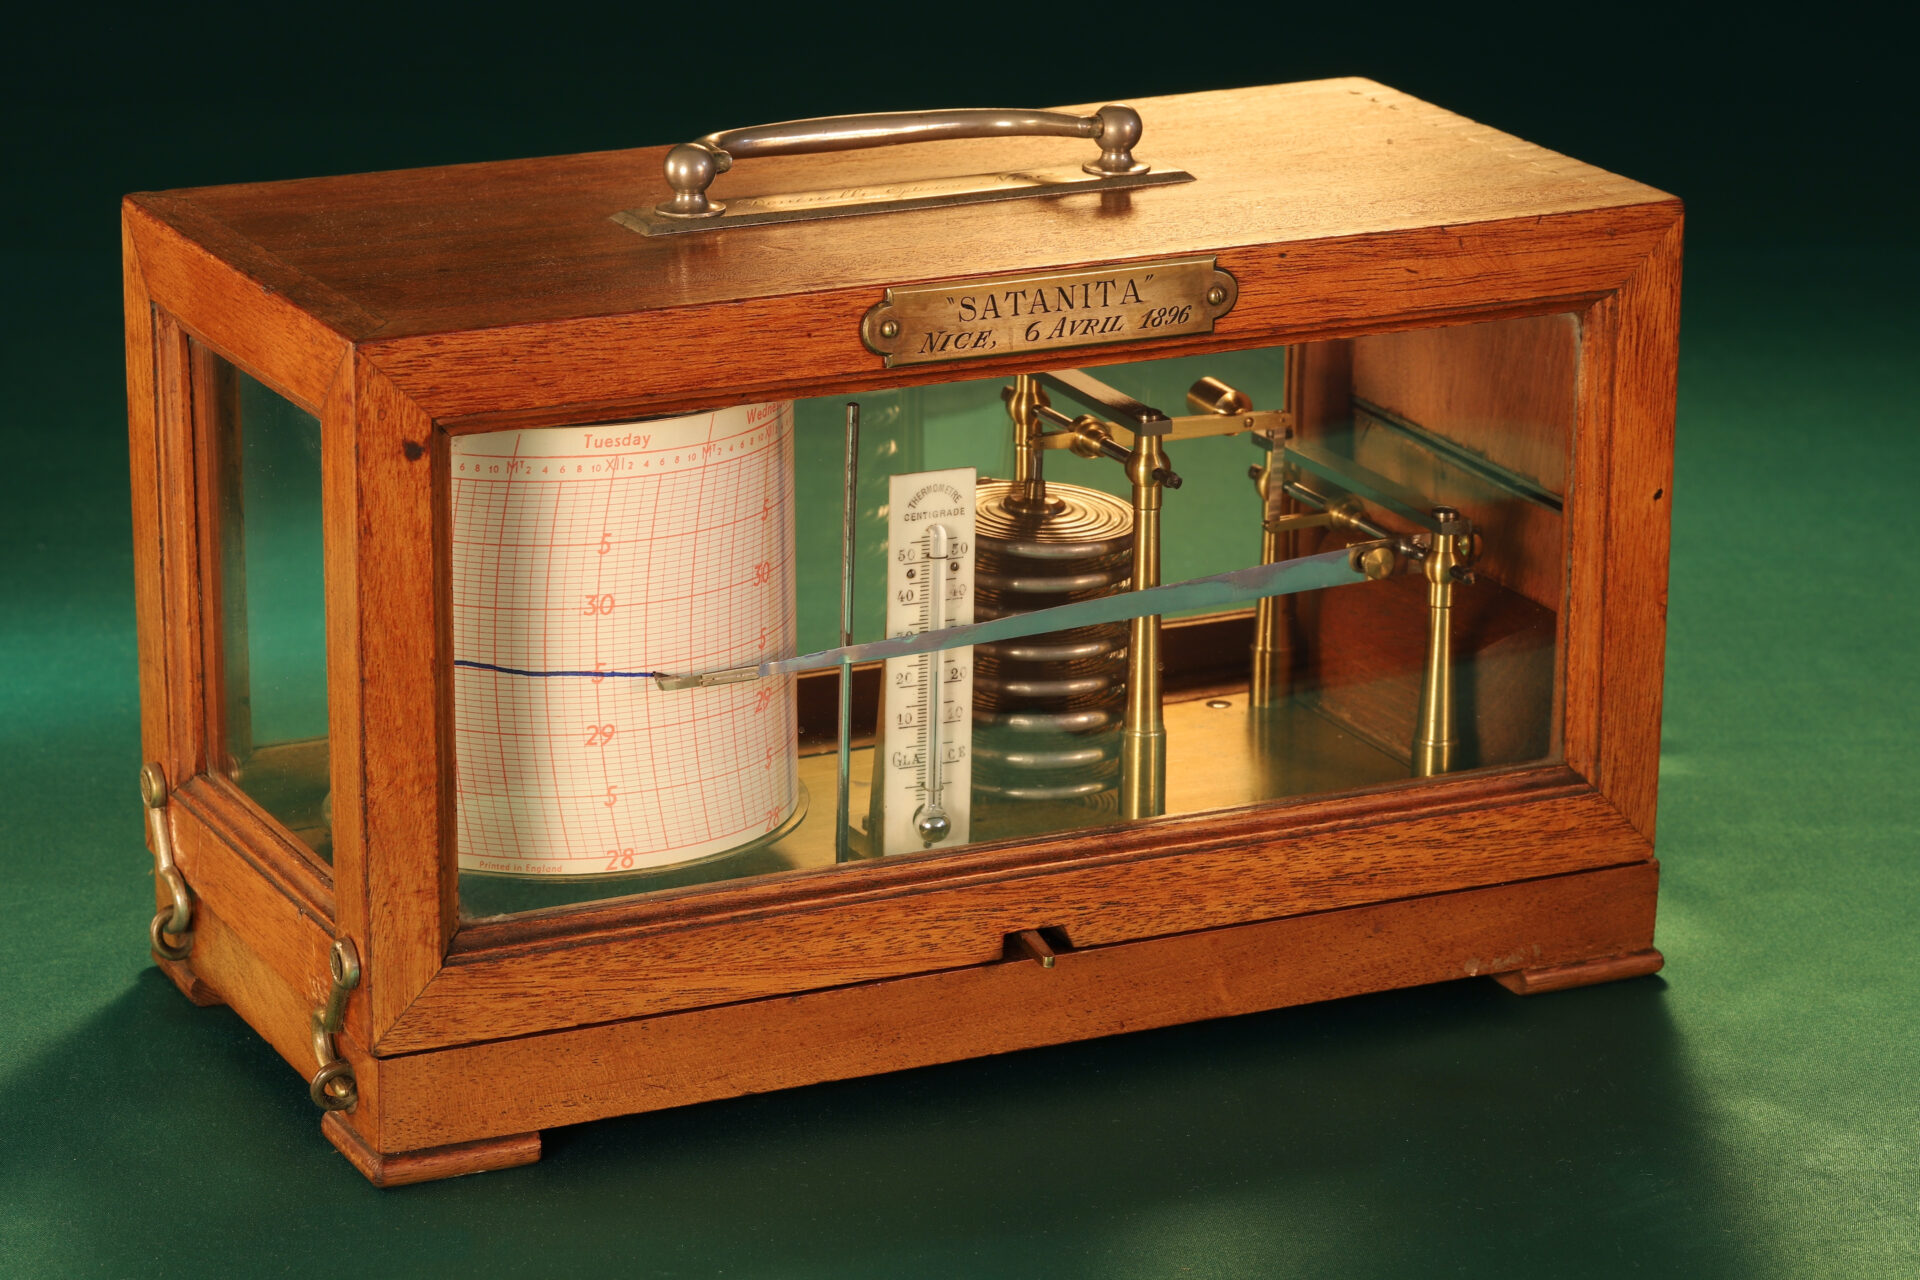 """Image of Richard Frères Drum Barograph No 19110 awarded to """"Satanita"""" 1896 with lid closed taken from lefthand side"""